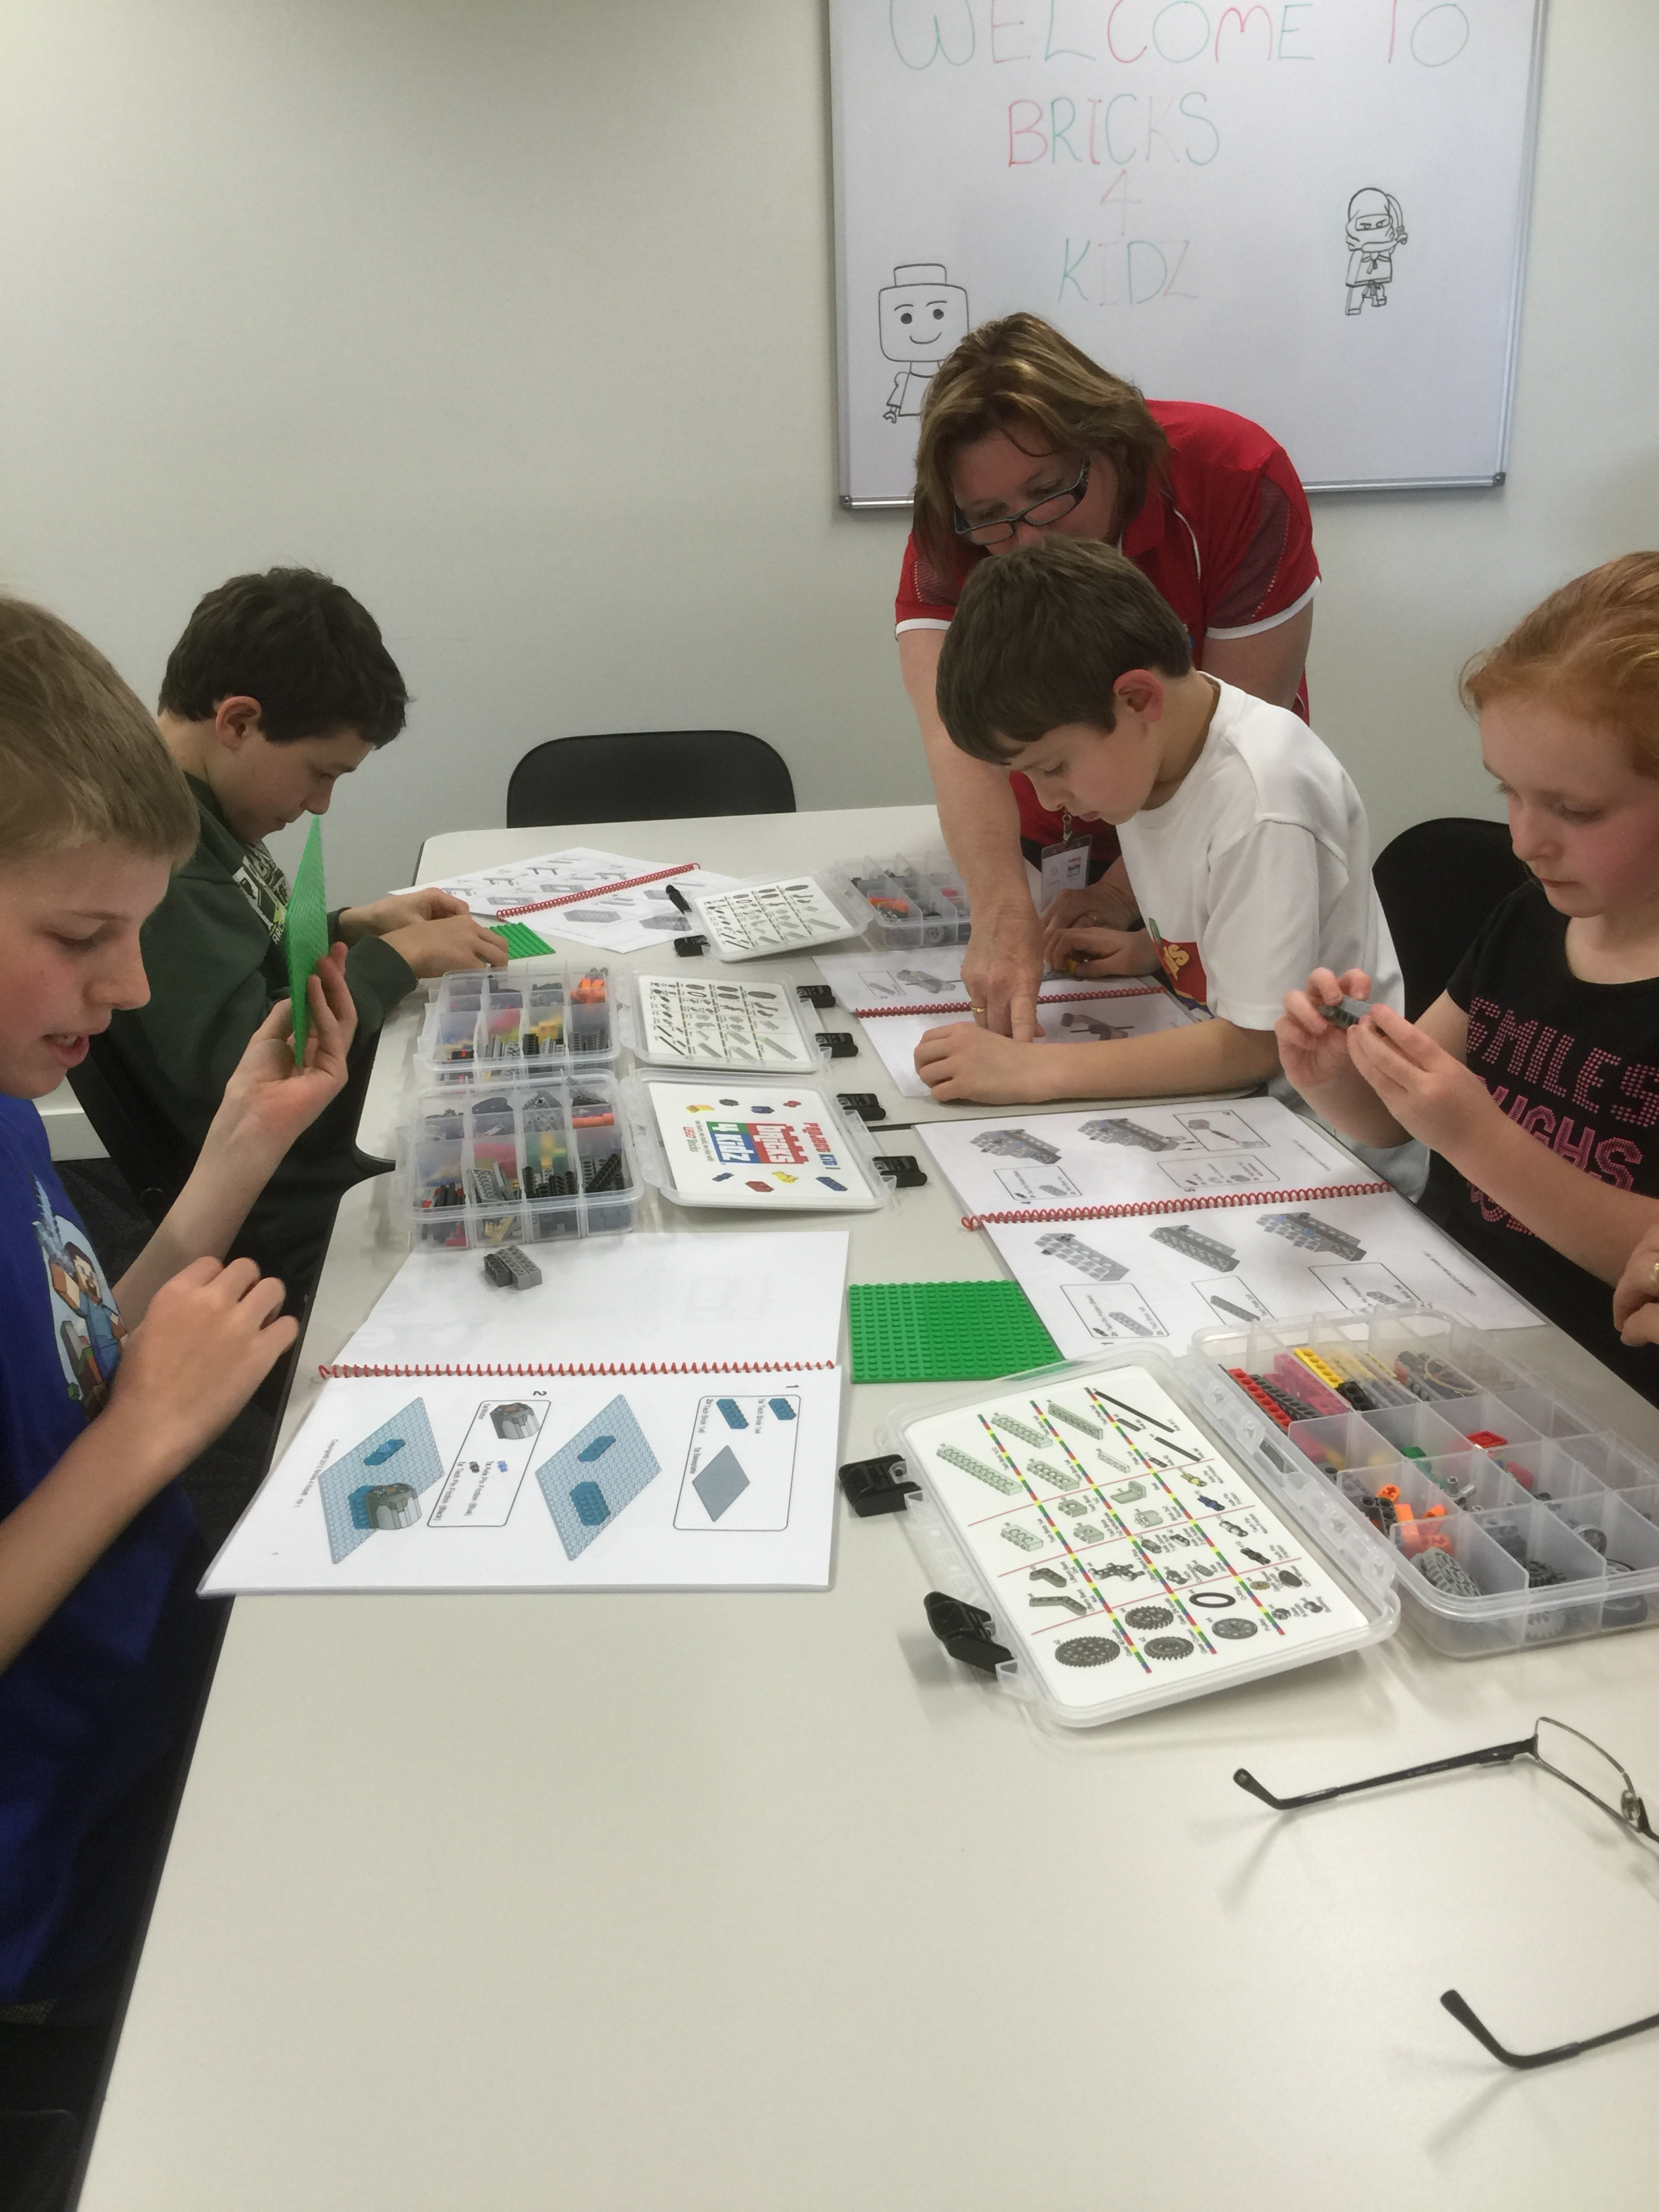 Kids enjoying a workshop at Bricks 4 kidz launch day